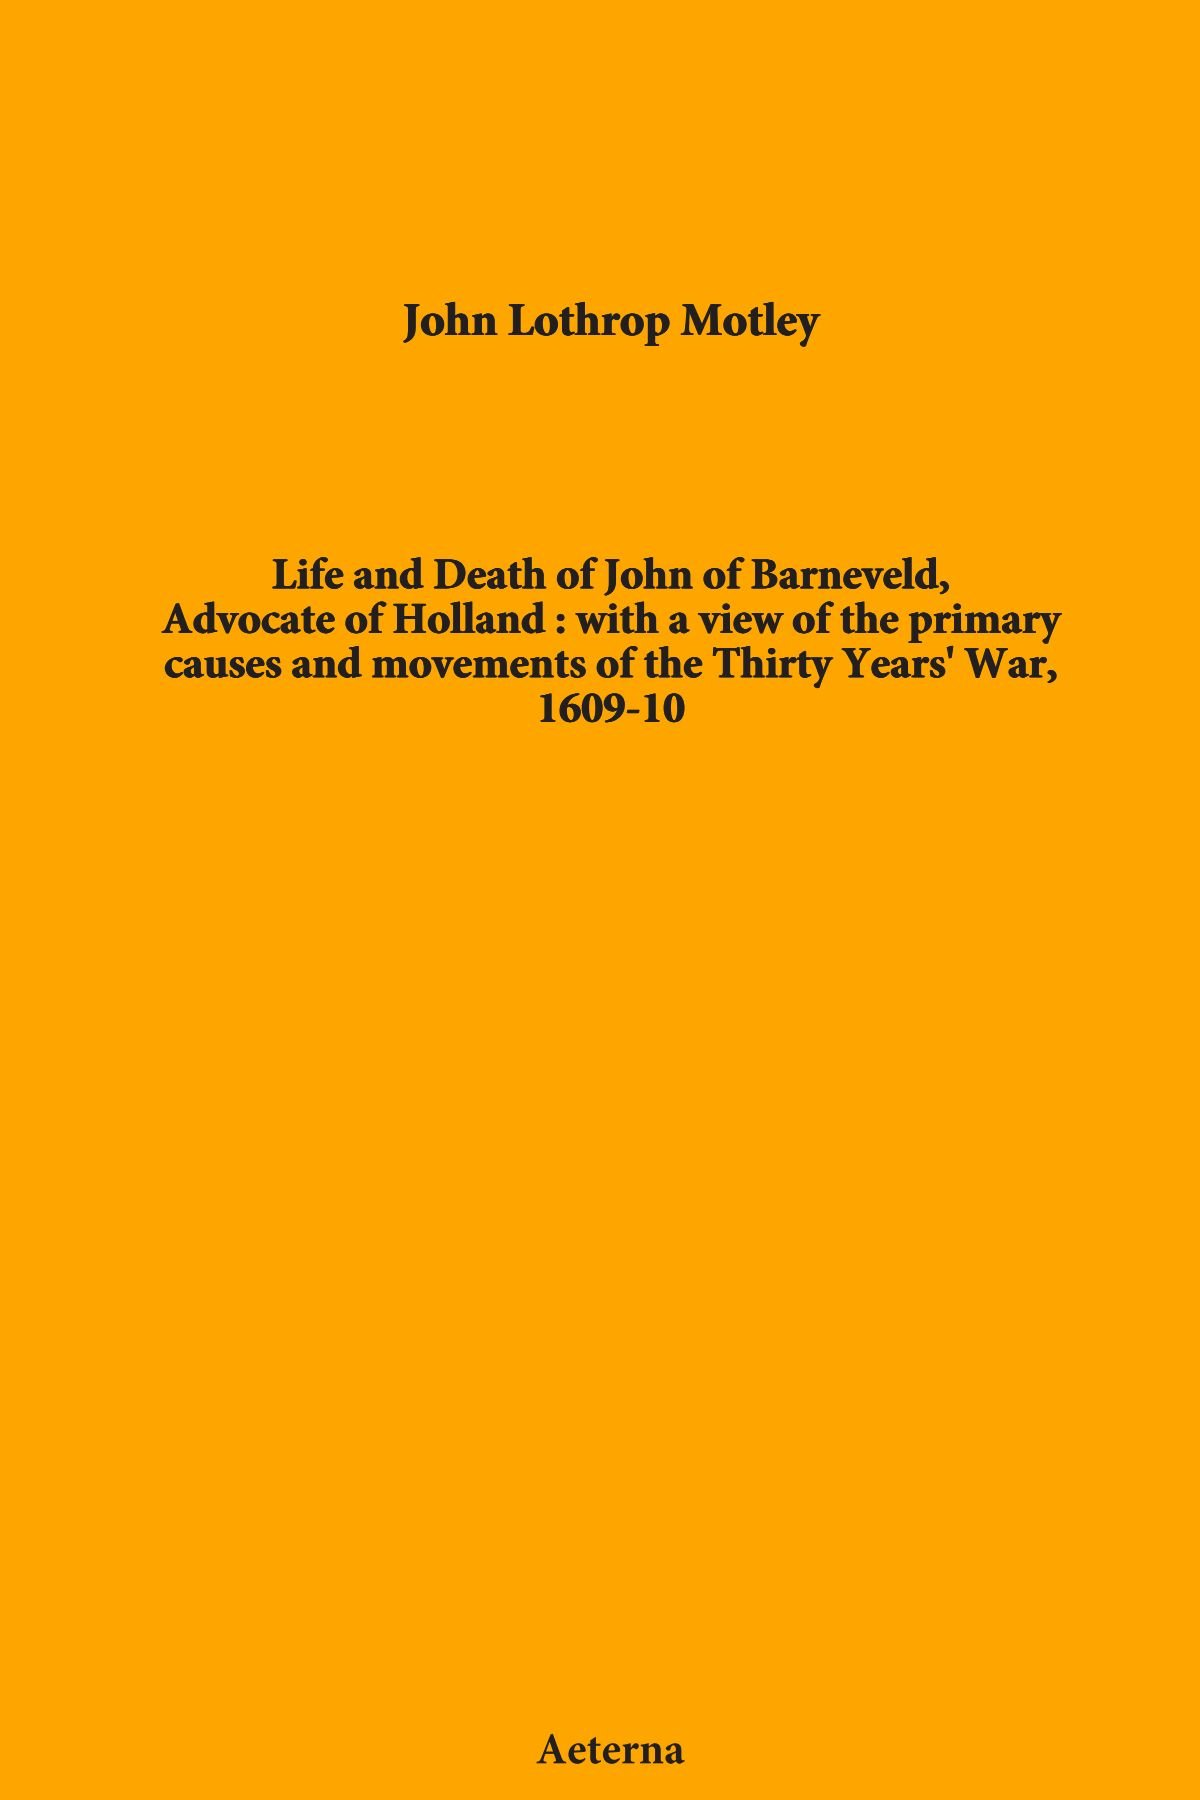 Read Online Life and Death of John of Barneveld, Advocate of Holland : with a view of the primary causes and movements of the Thirty Years' War, 1609-10 ebook